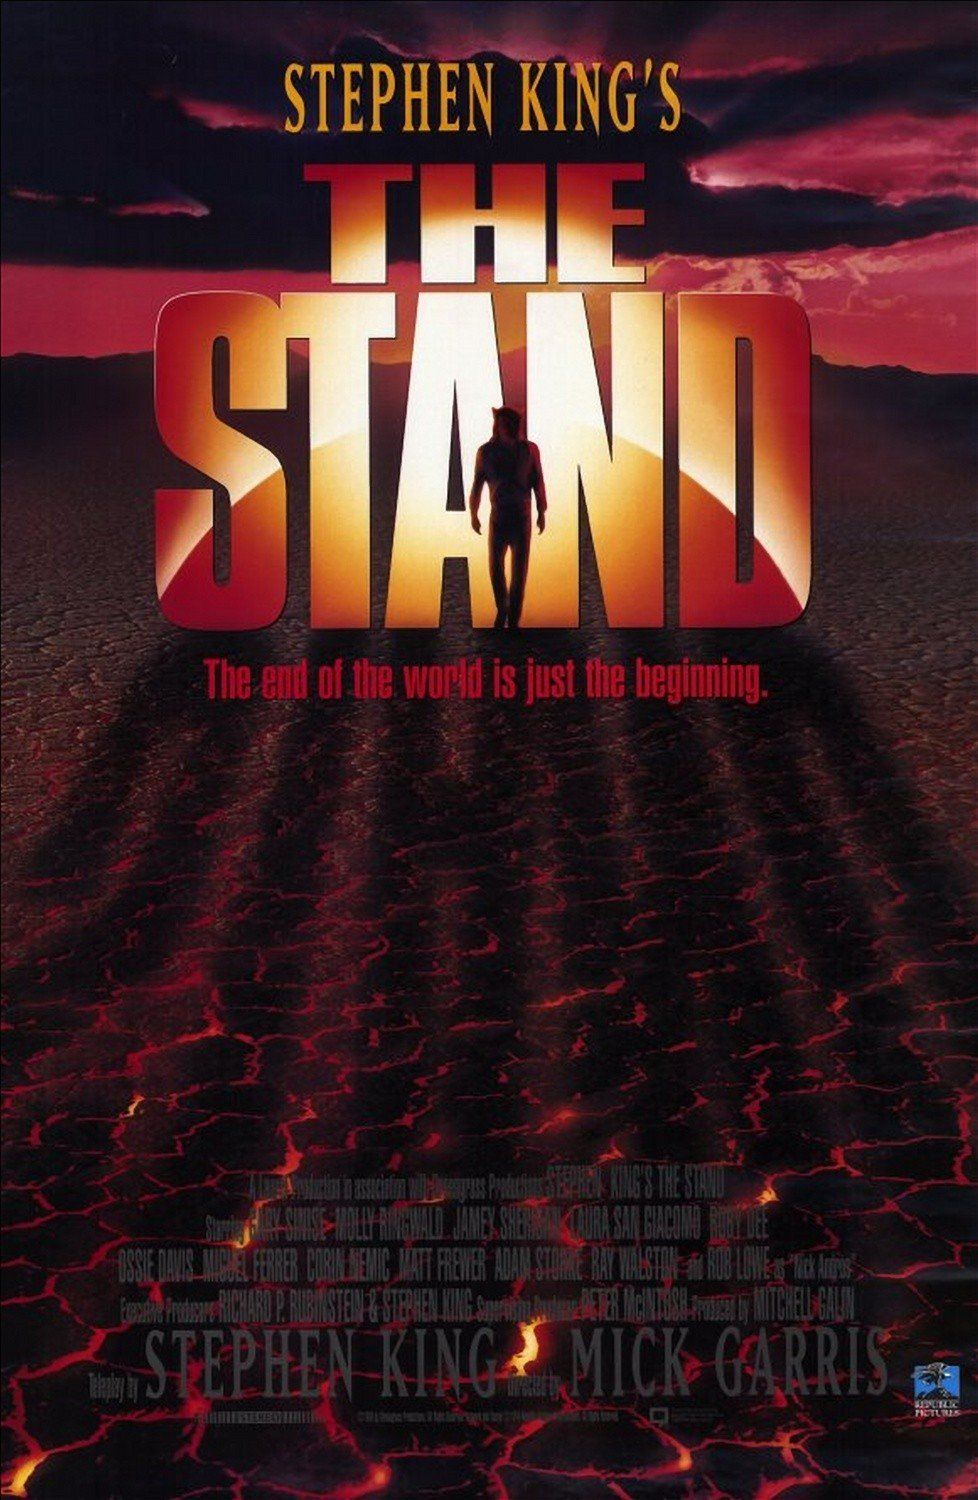 Stephen King S The Stand 1994 Movie Review Stephen King Movies The Stand Movie Stephen King